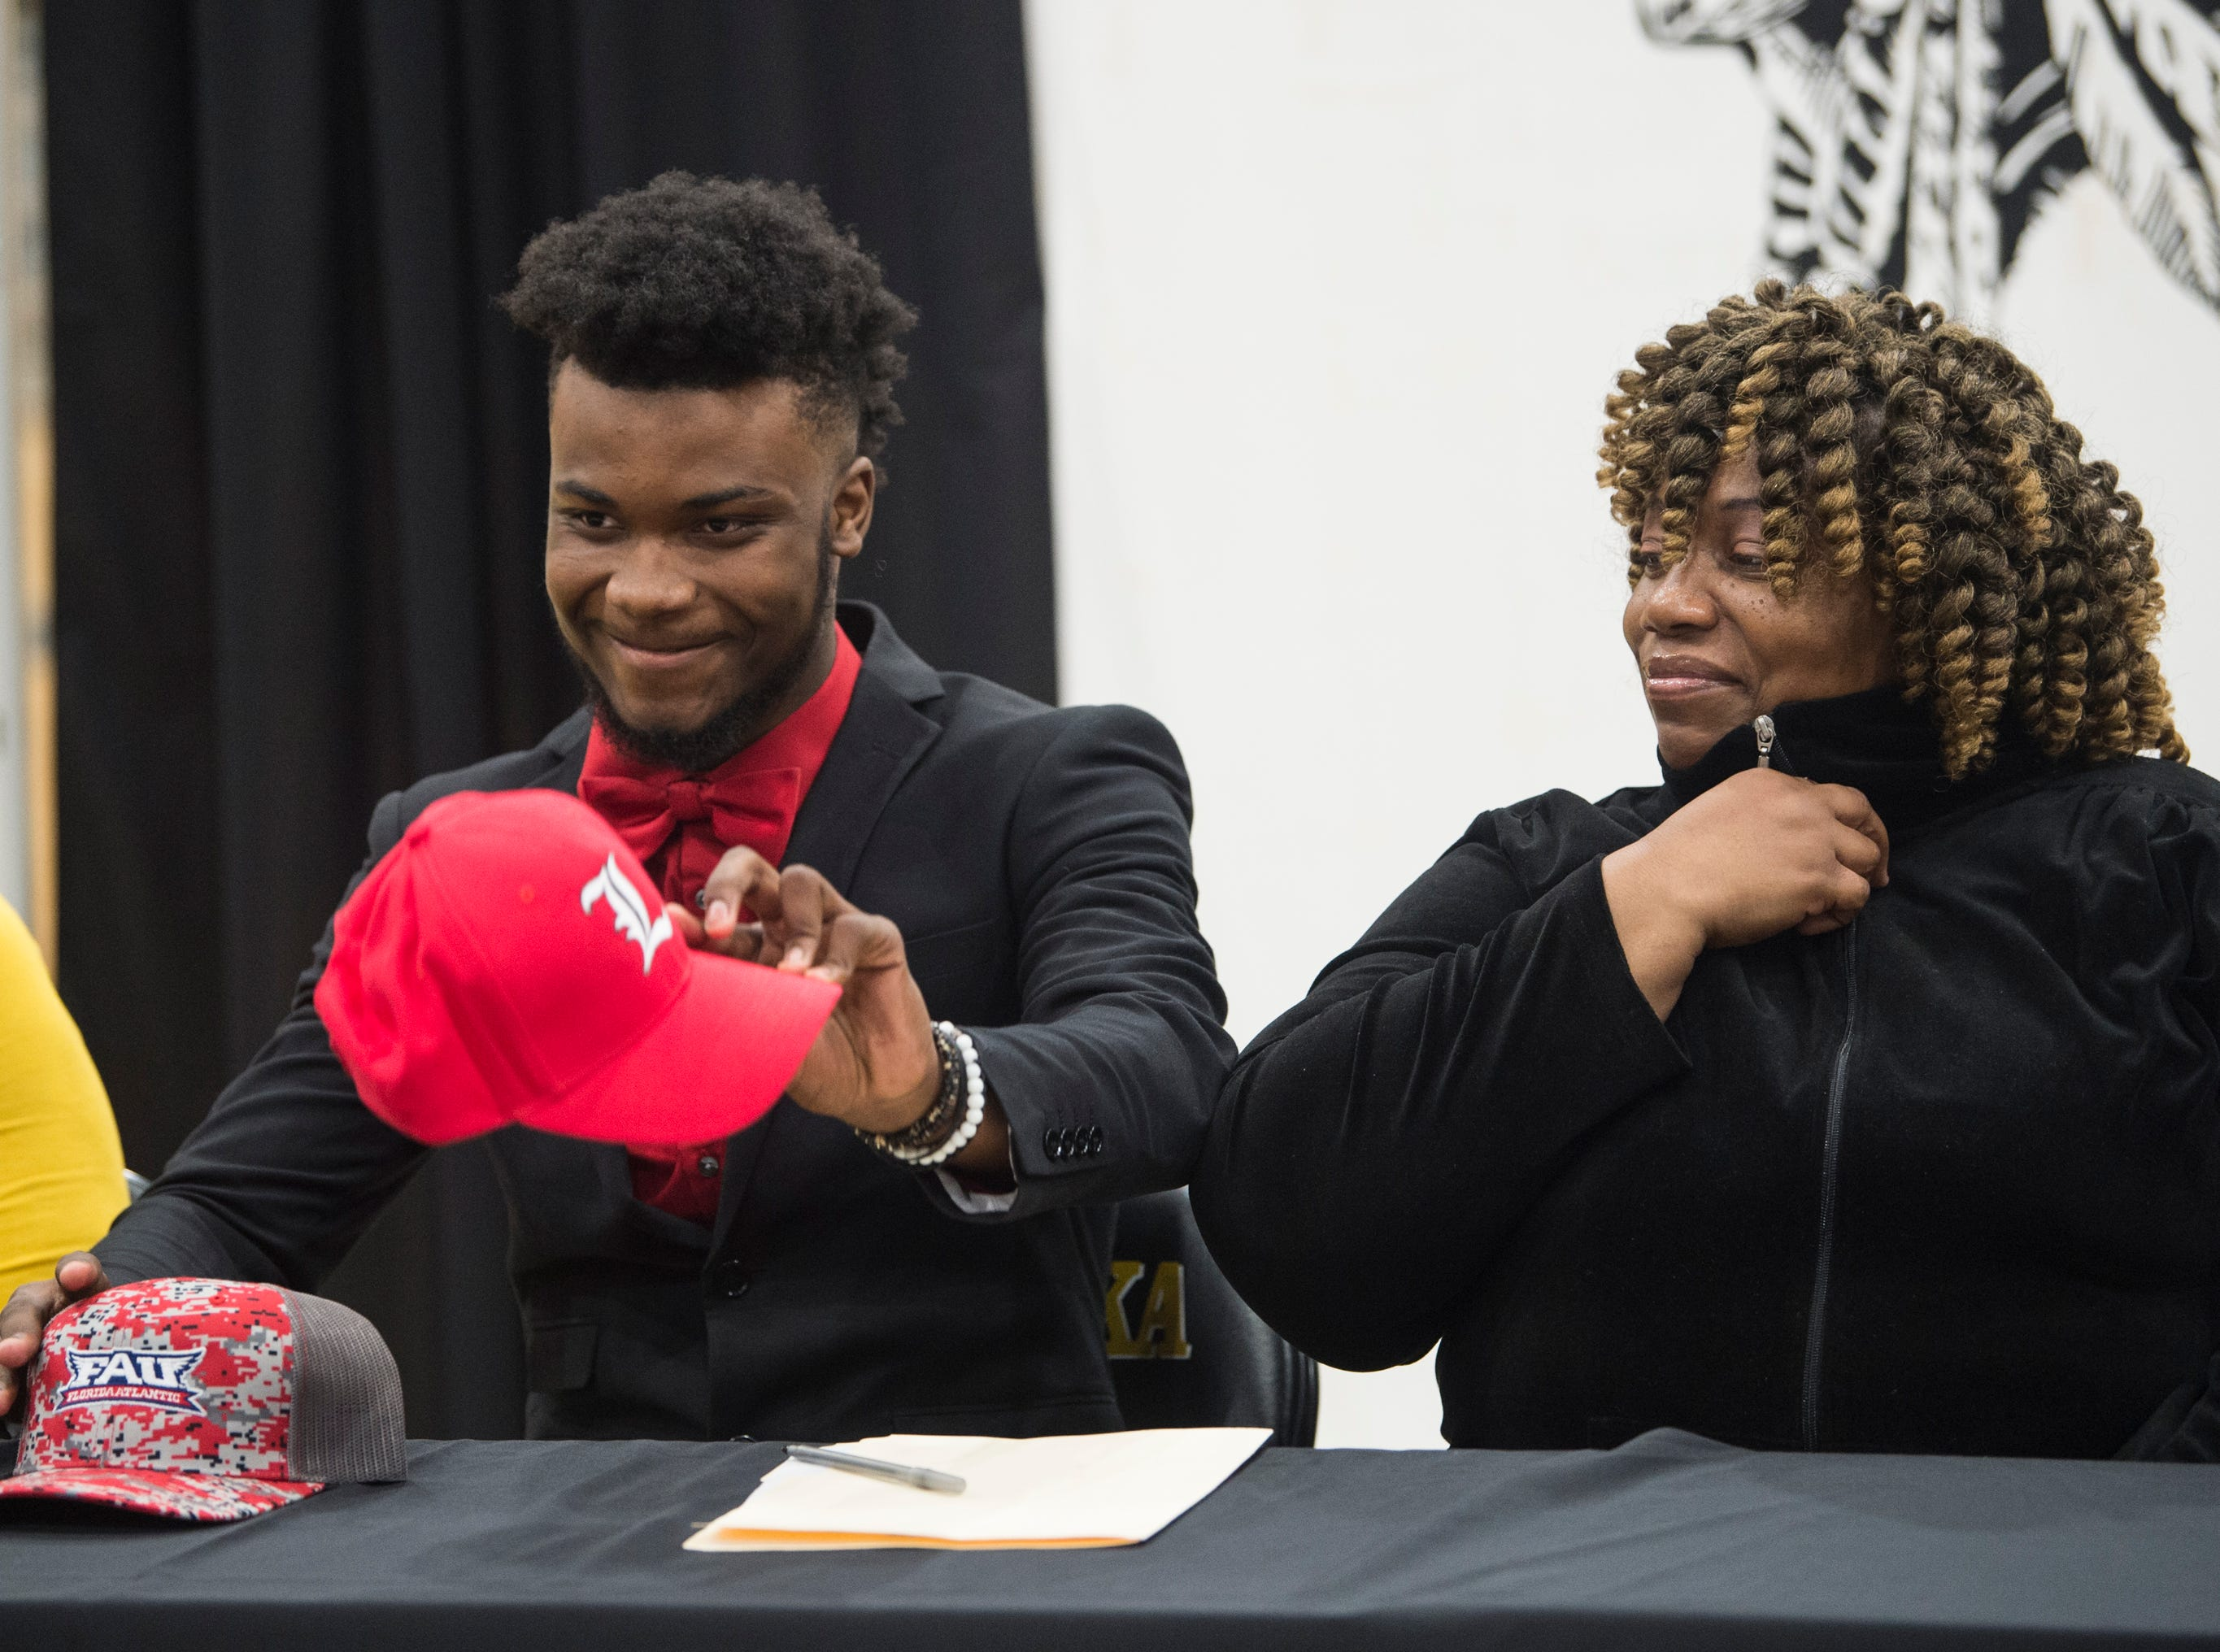 JD Martin fakes out the crowd with the Louisville hat before announcing his signing with Florida Atlantic during signing day at Wetumpka High School in Wetumpka, Ala., on Wednesday, Feb. 6, 2019.